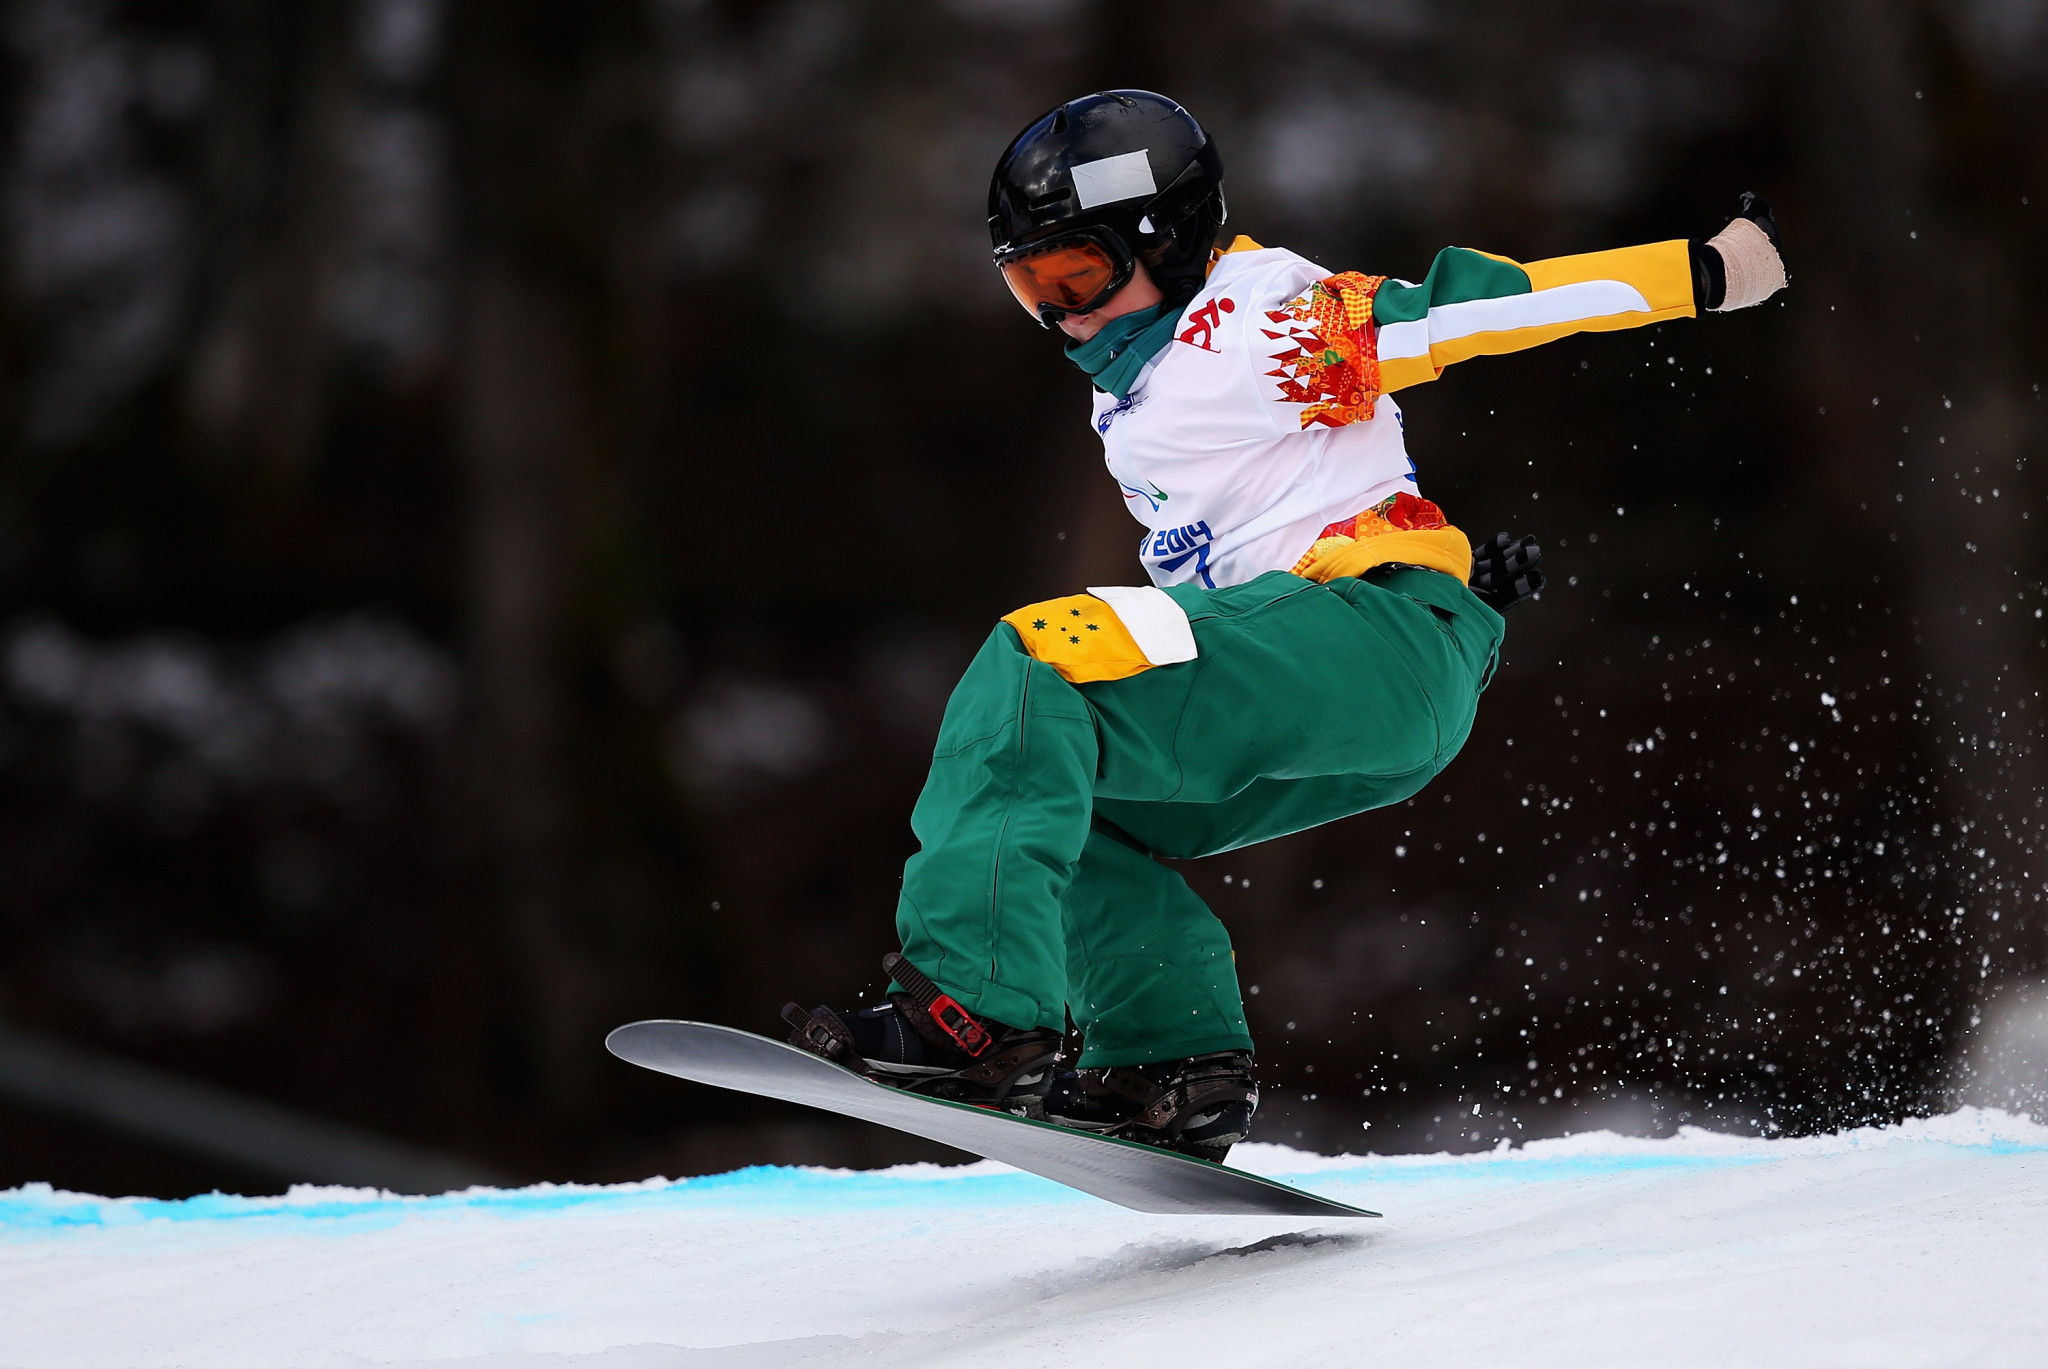 Ben Tudhope was only 14 when he appeared at the Sochi 2014 Winter Paralympics ©Getty Images